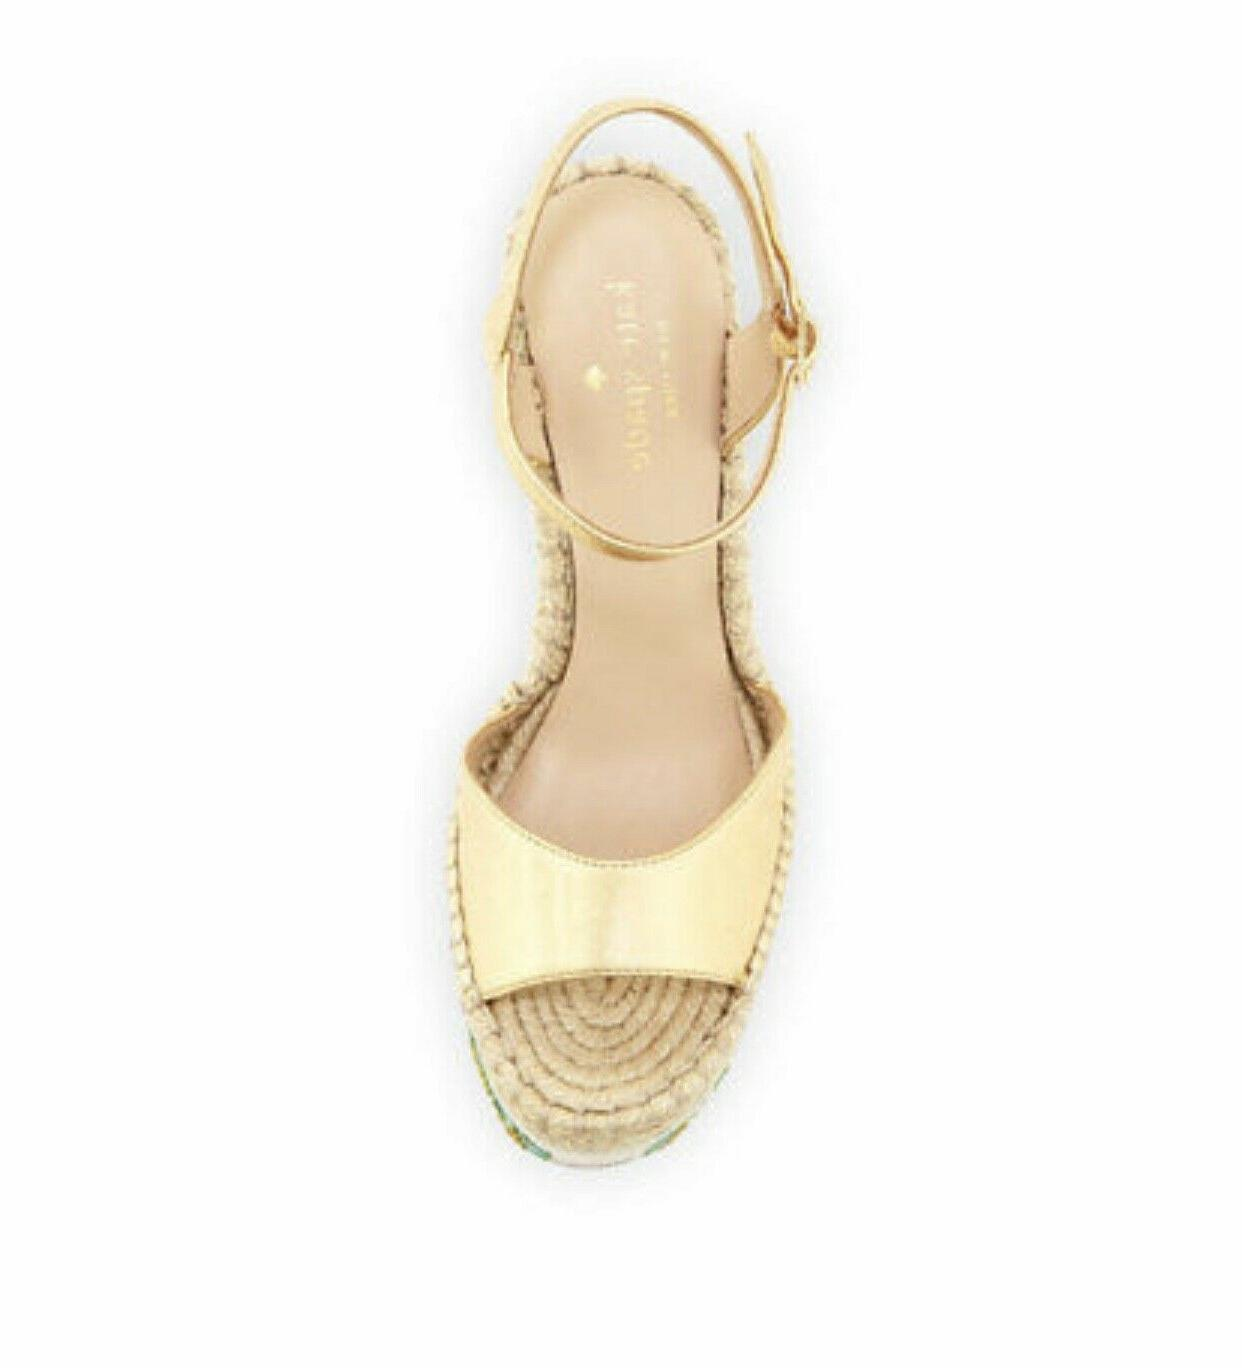 size 11 CACTUS WEDGE ankle gold